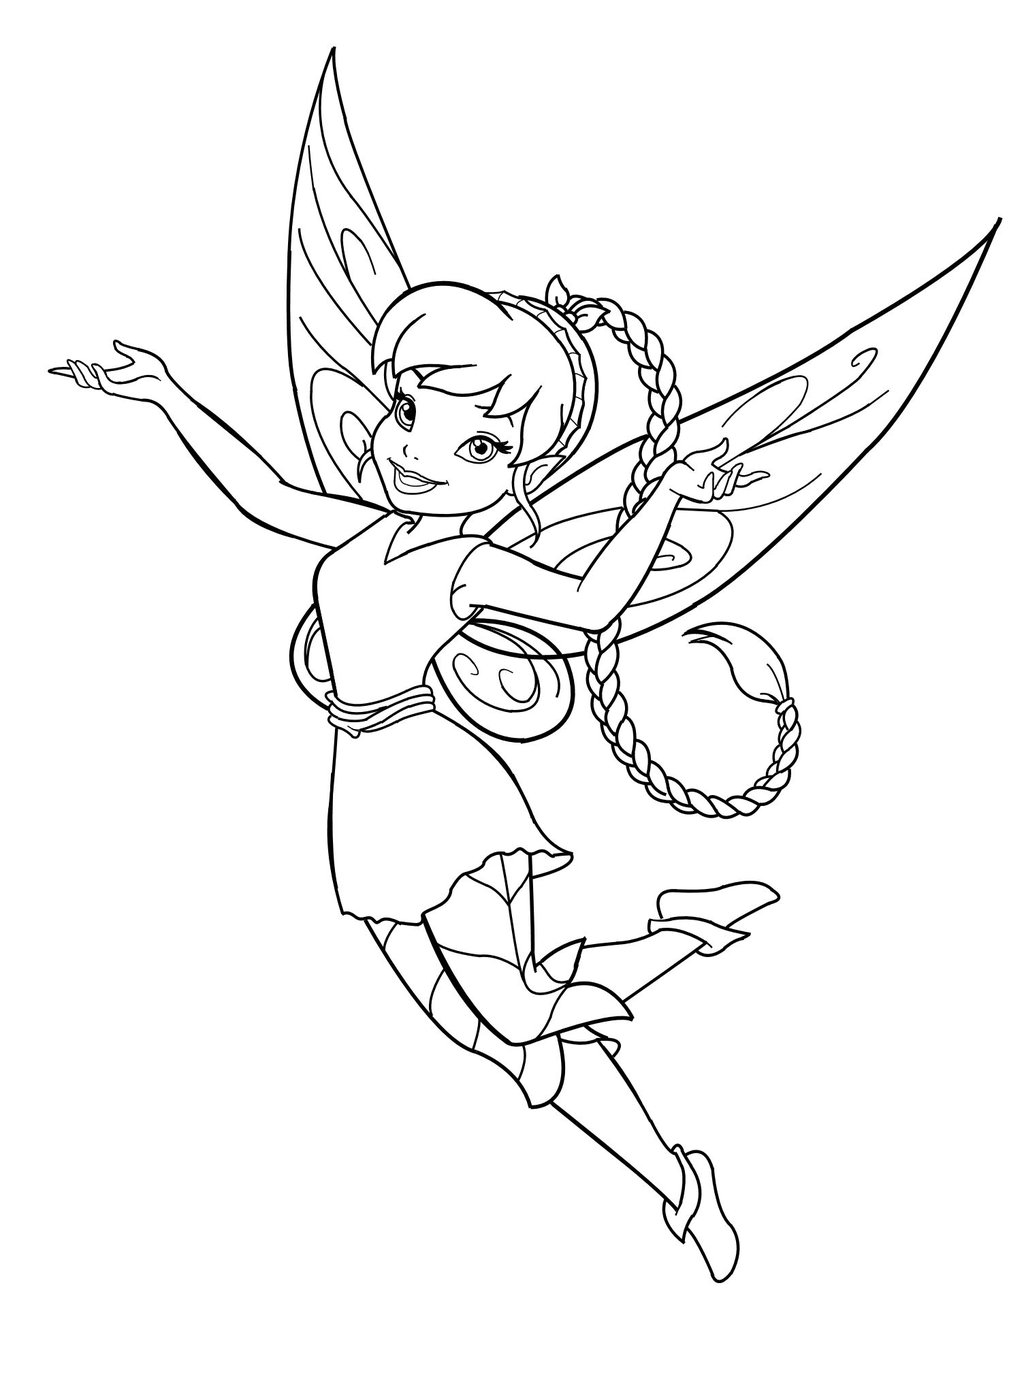 fairies coloring pages free printable fairy coloring pages for kids pages coloring fairies